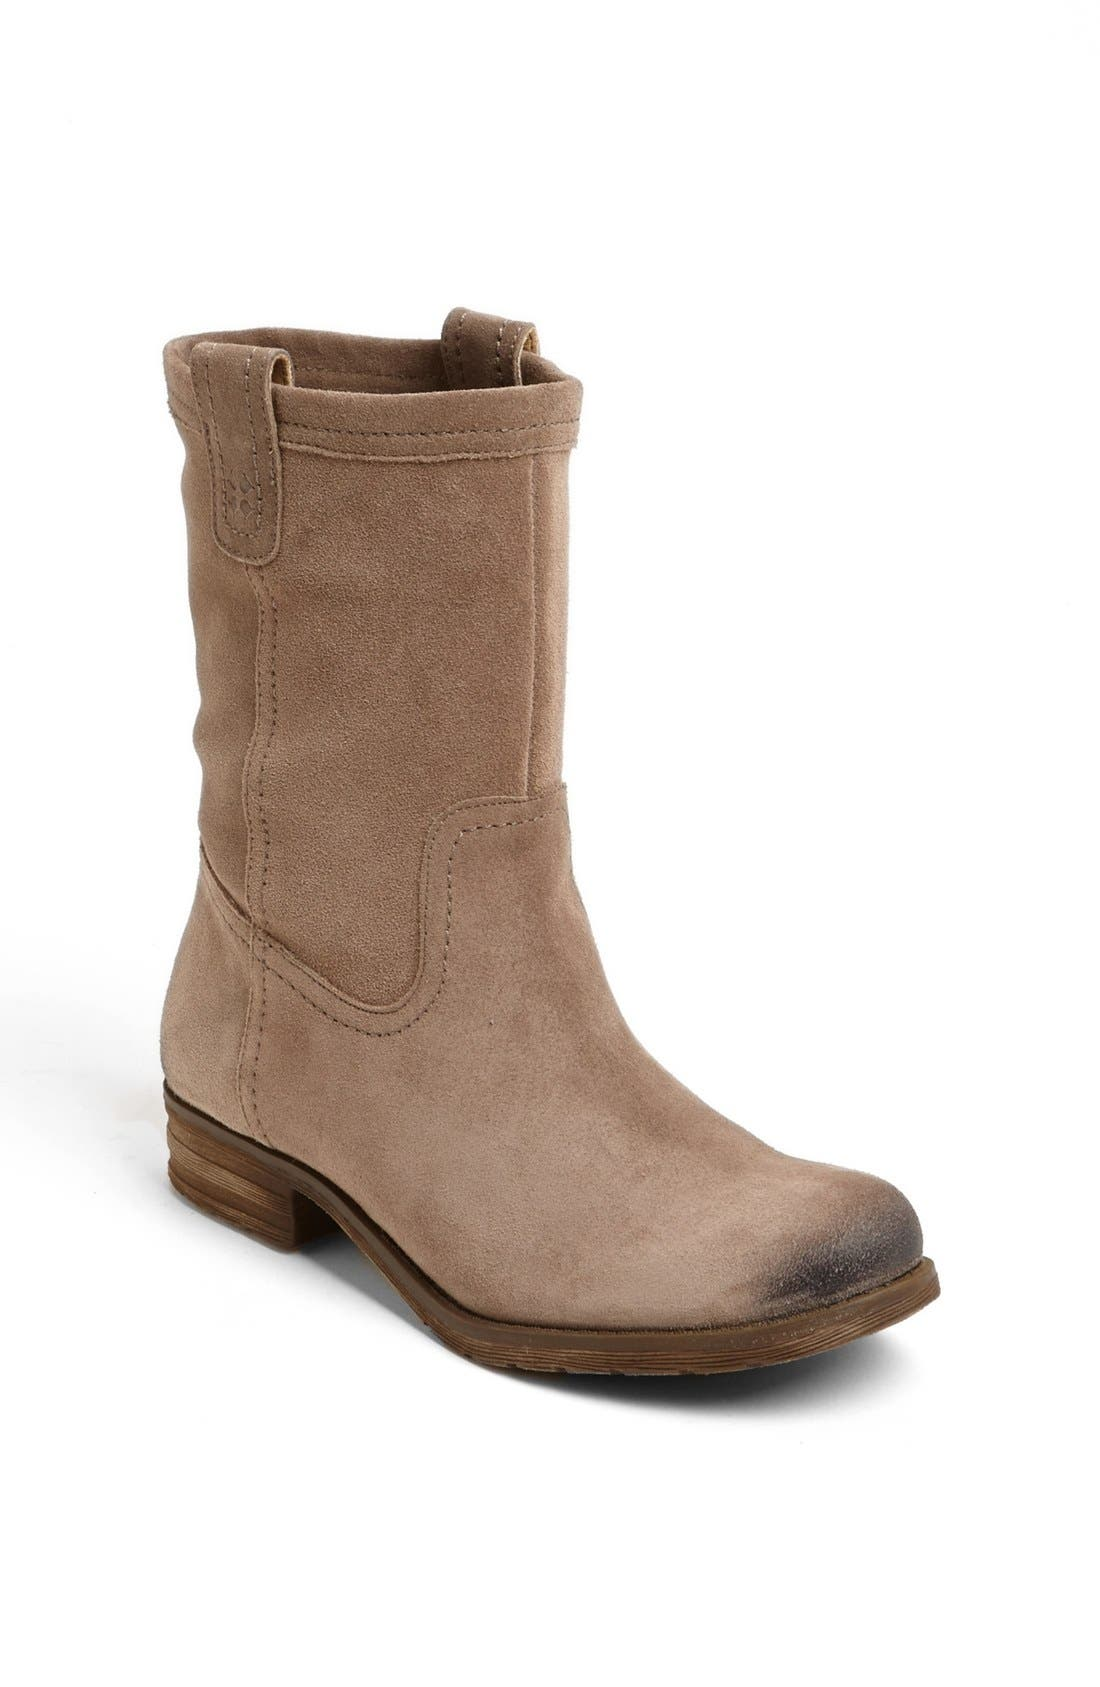 Alternate Image 1 Selected - Naturalizer 'Basha' Boot